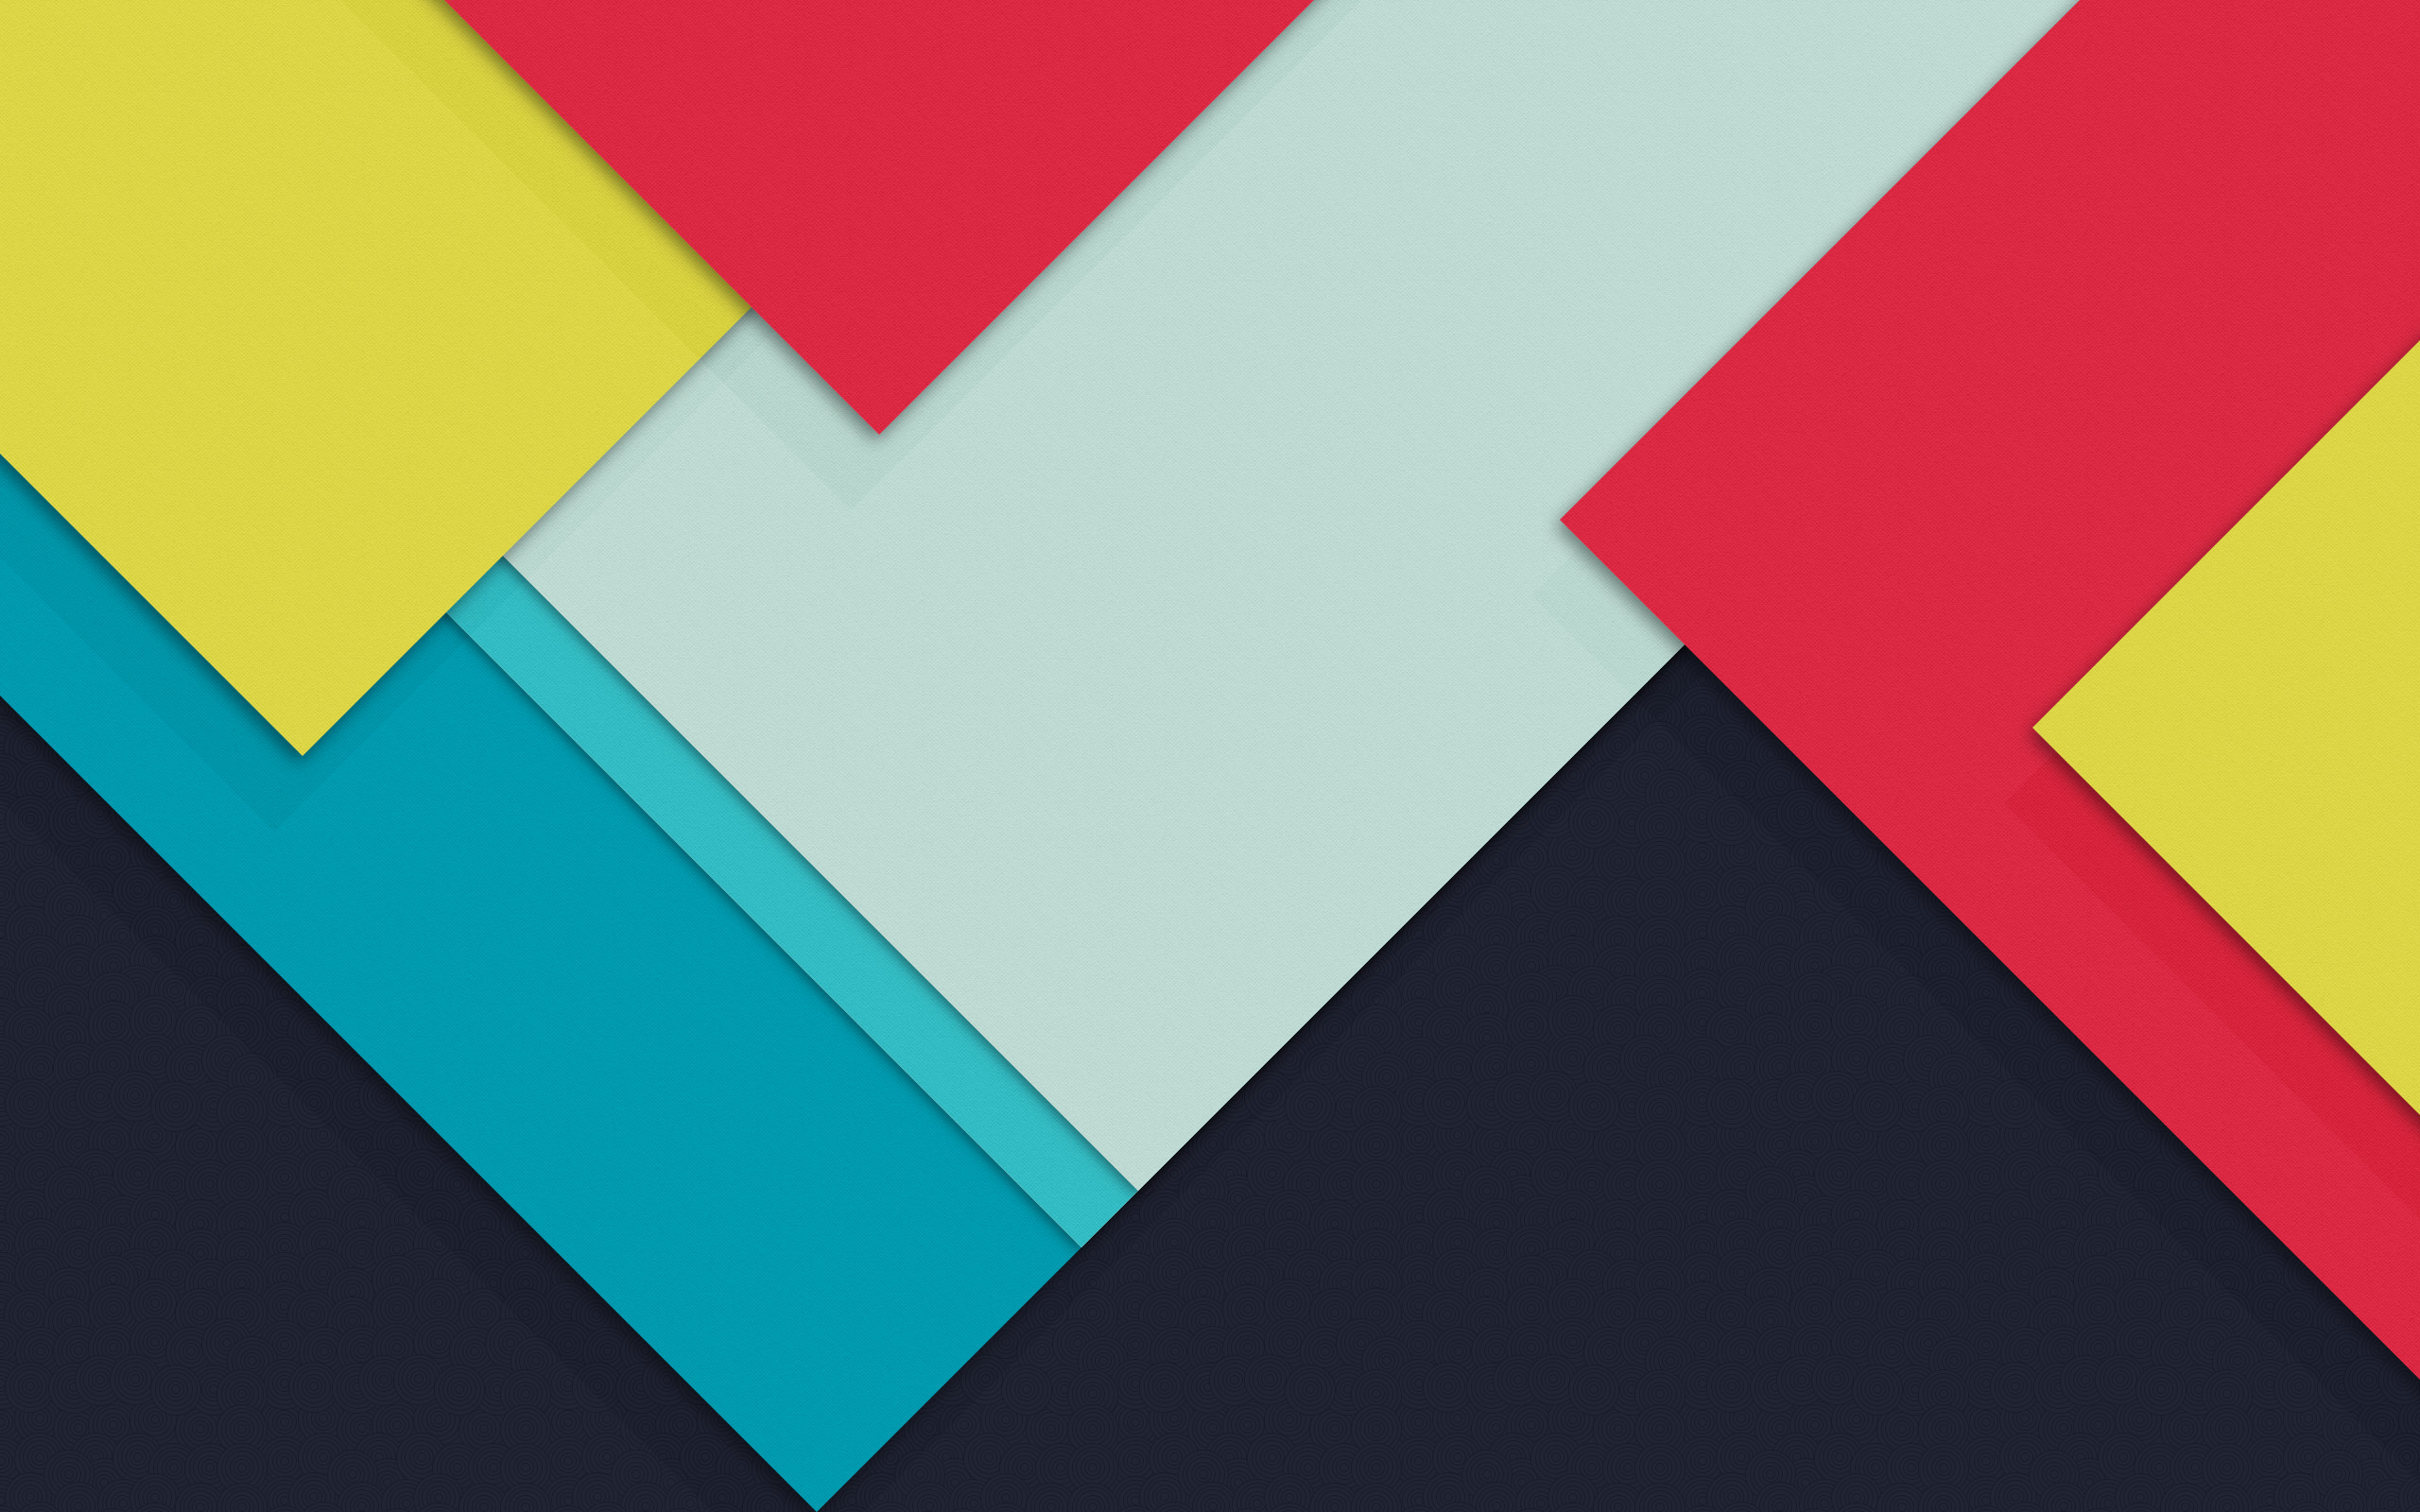 Android L Wallpaper Hd 64 Images